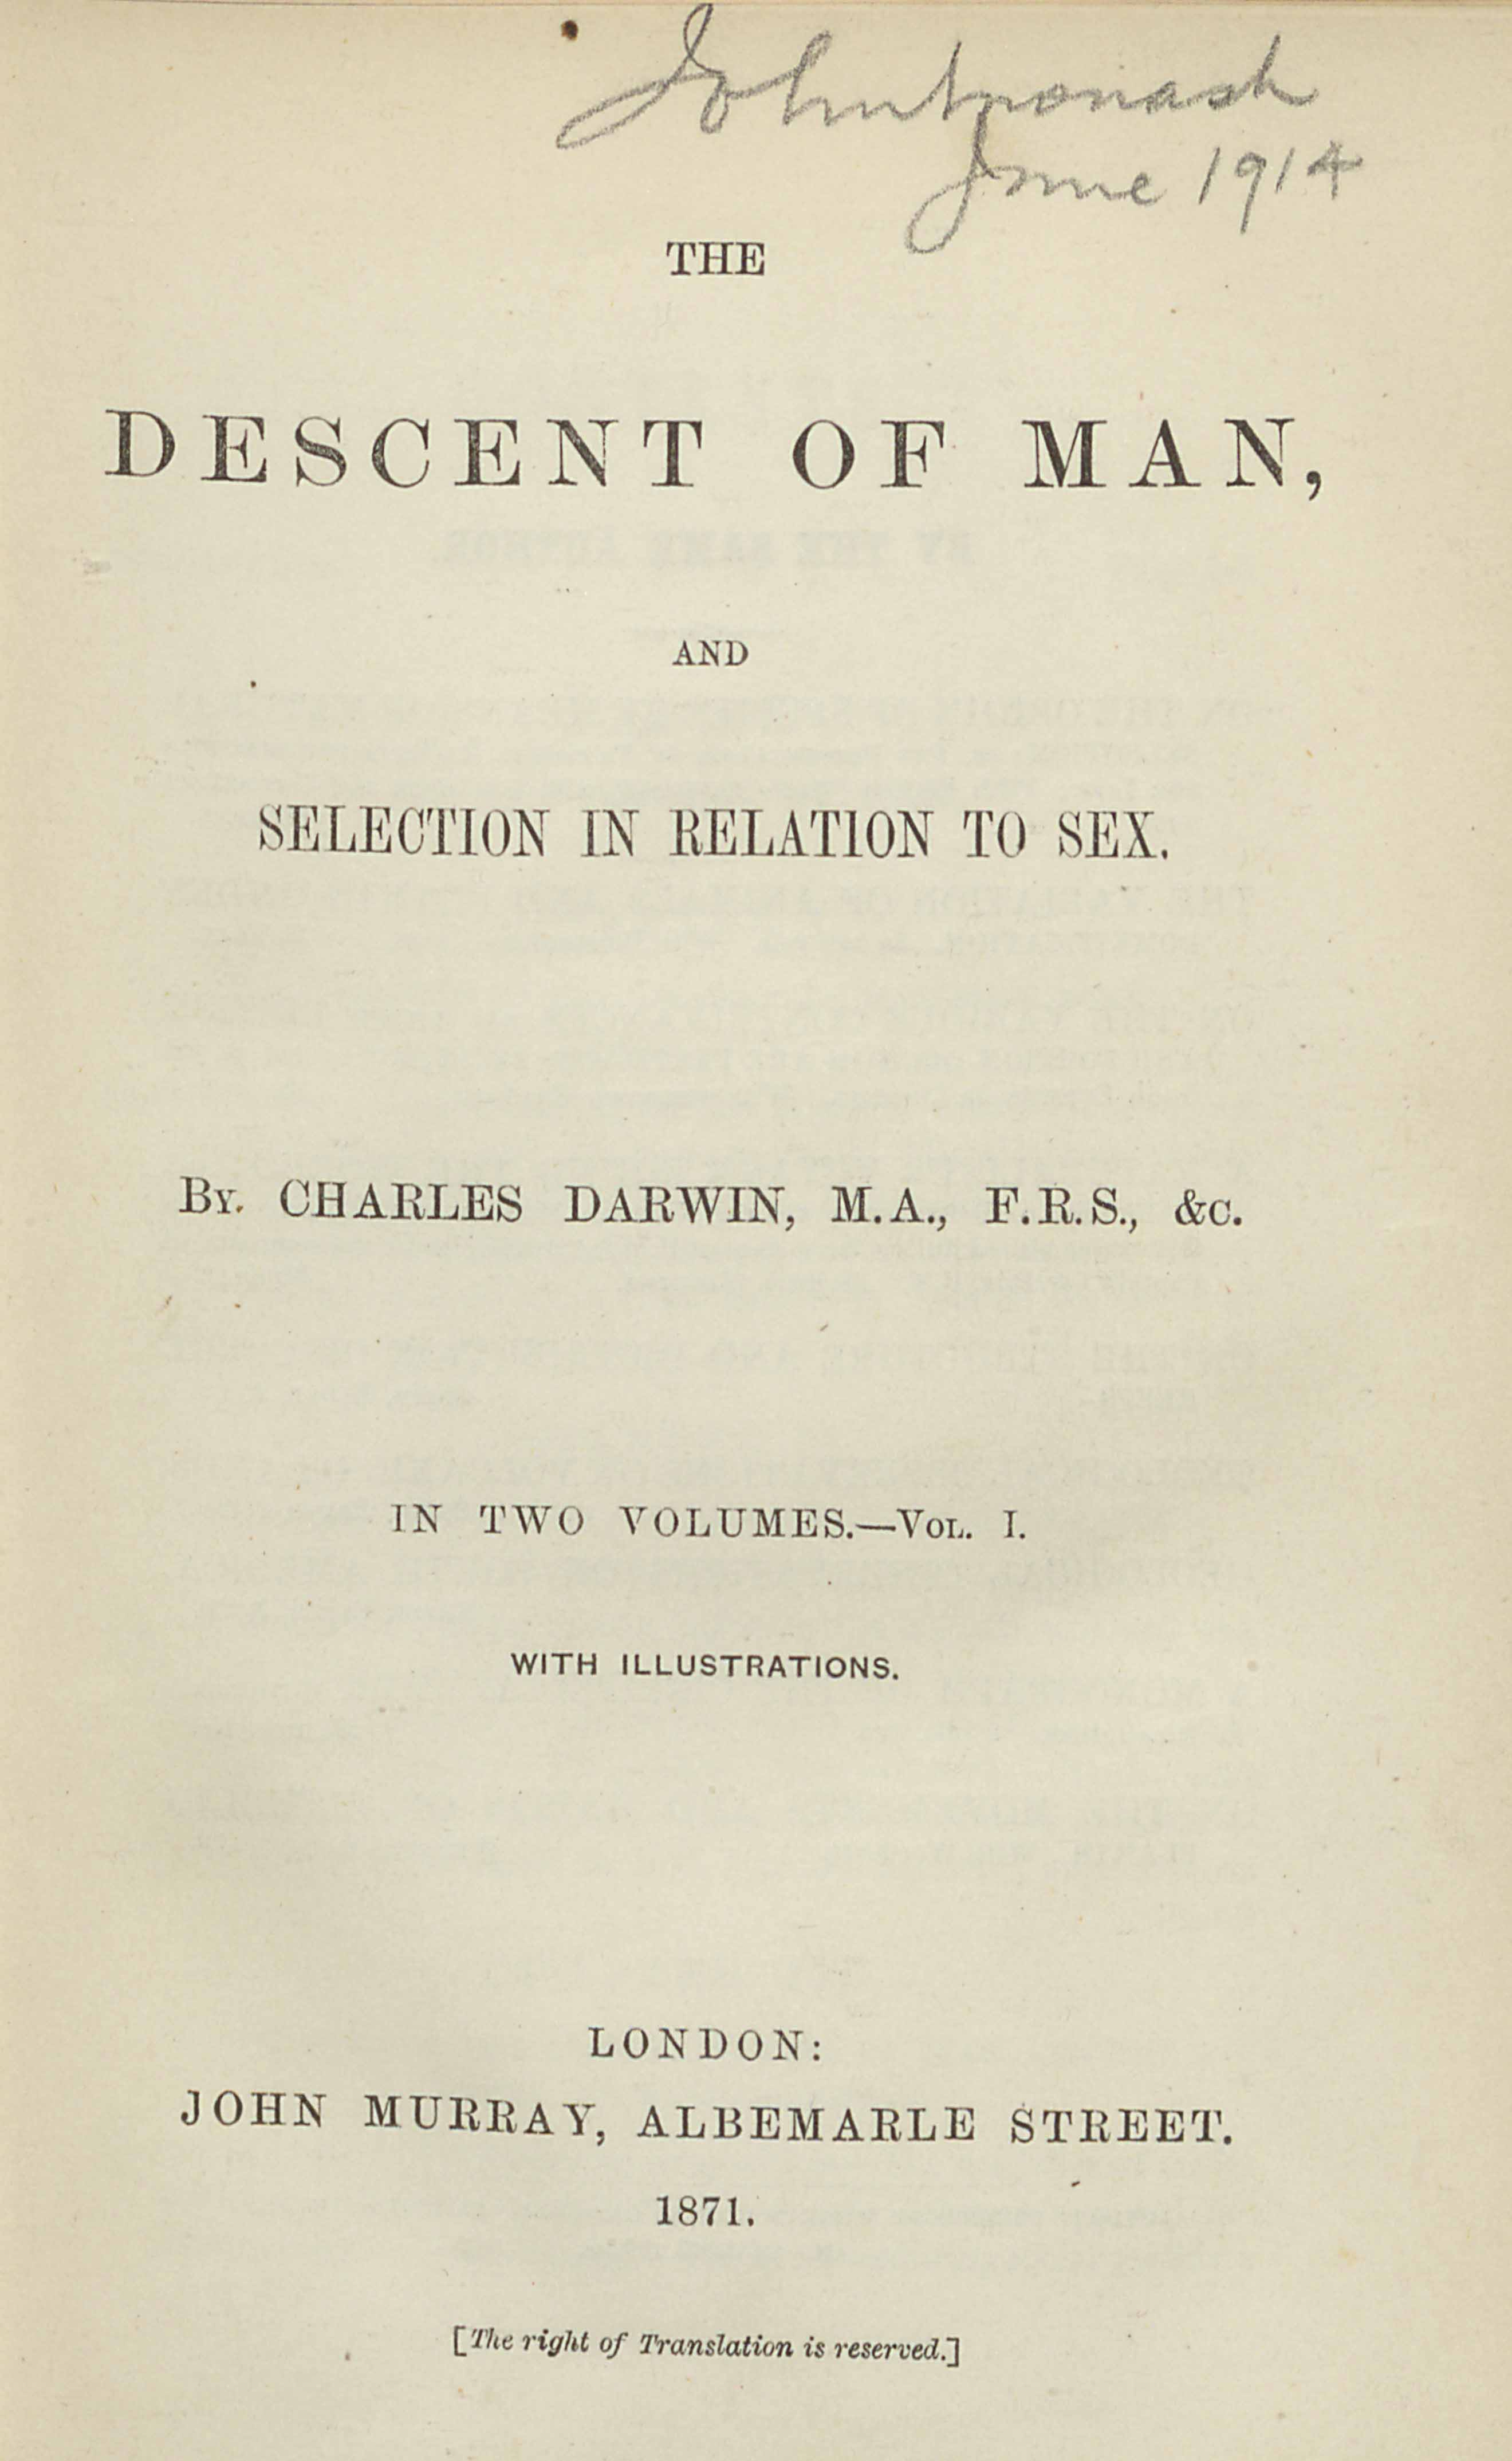 Charles Darwin's The Descent of Man, frontispiece